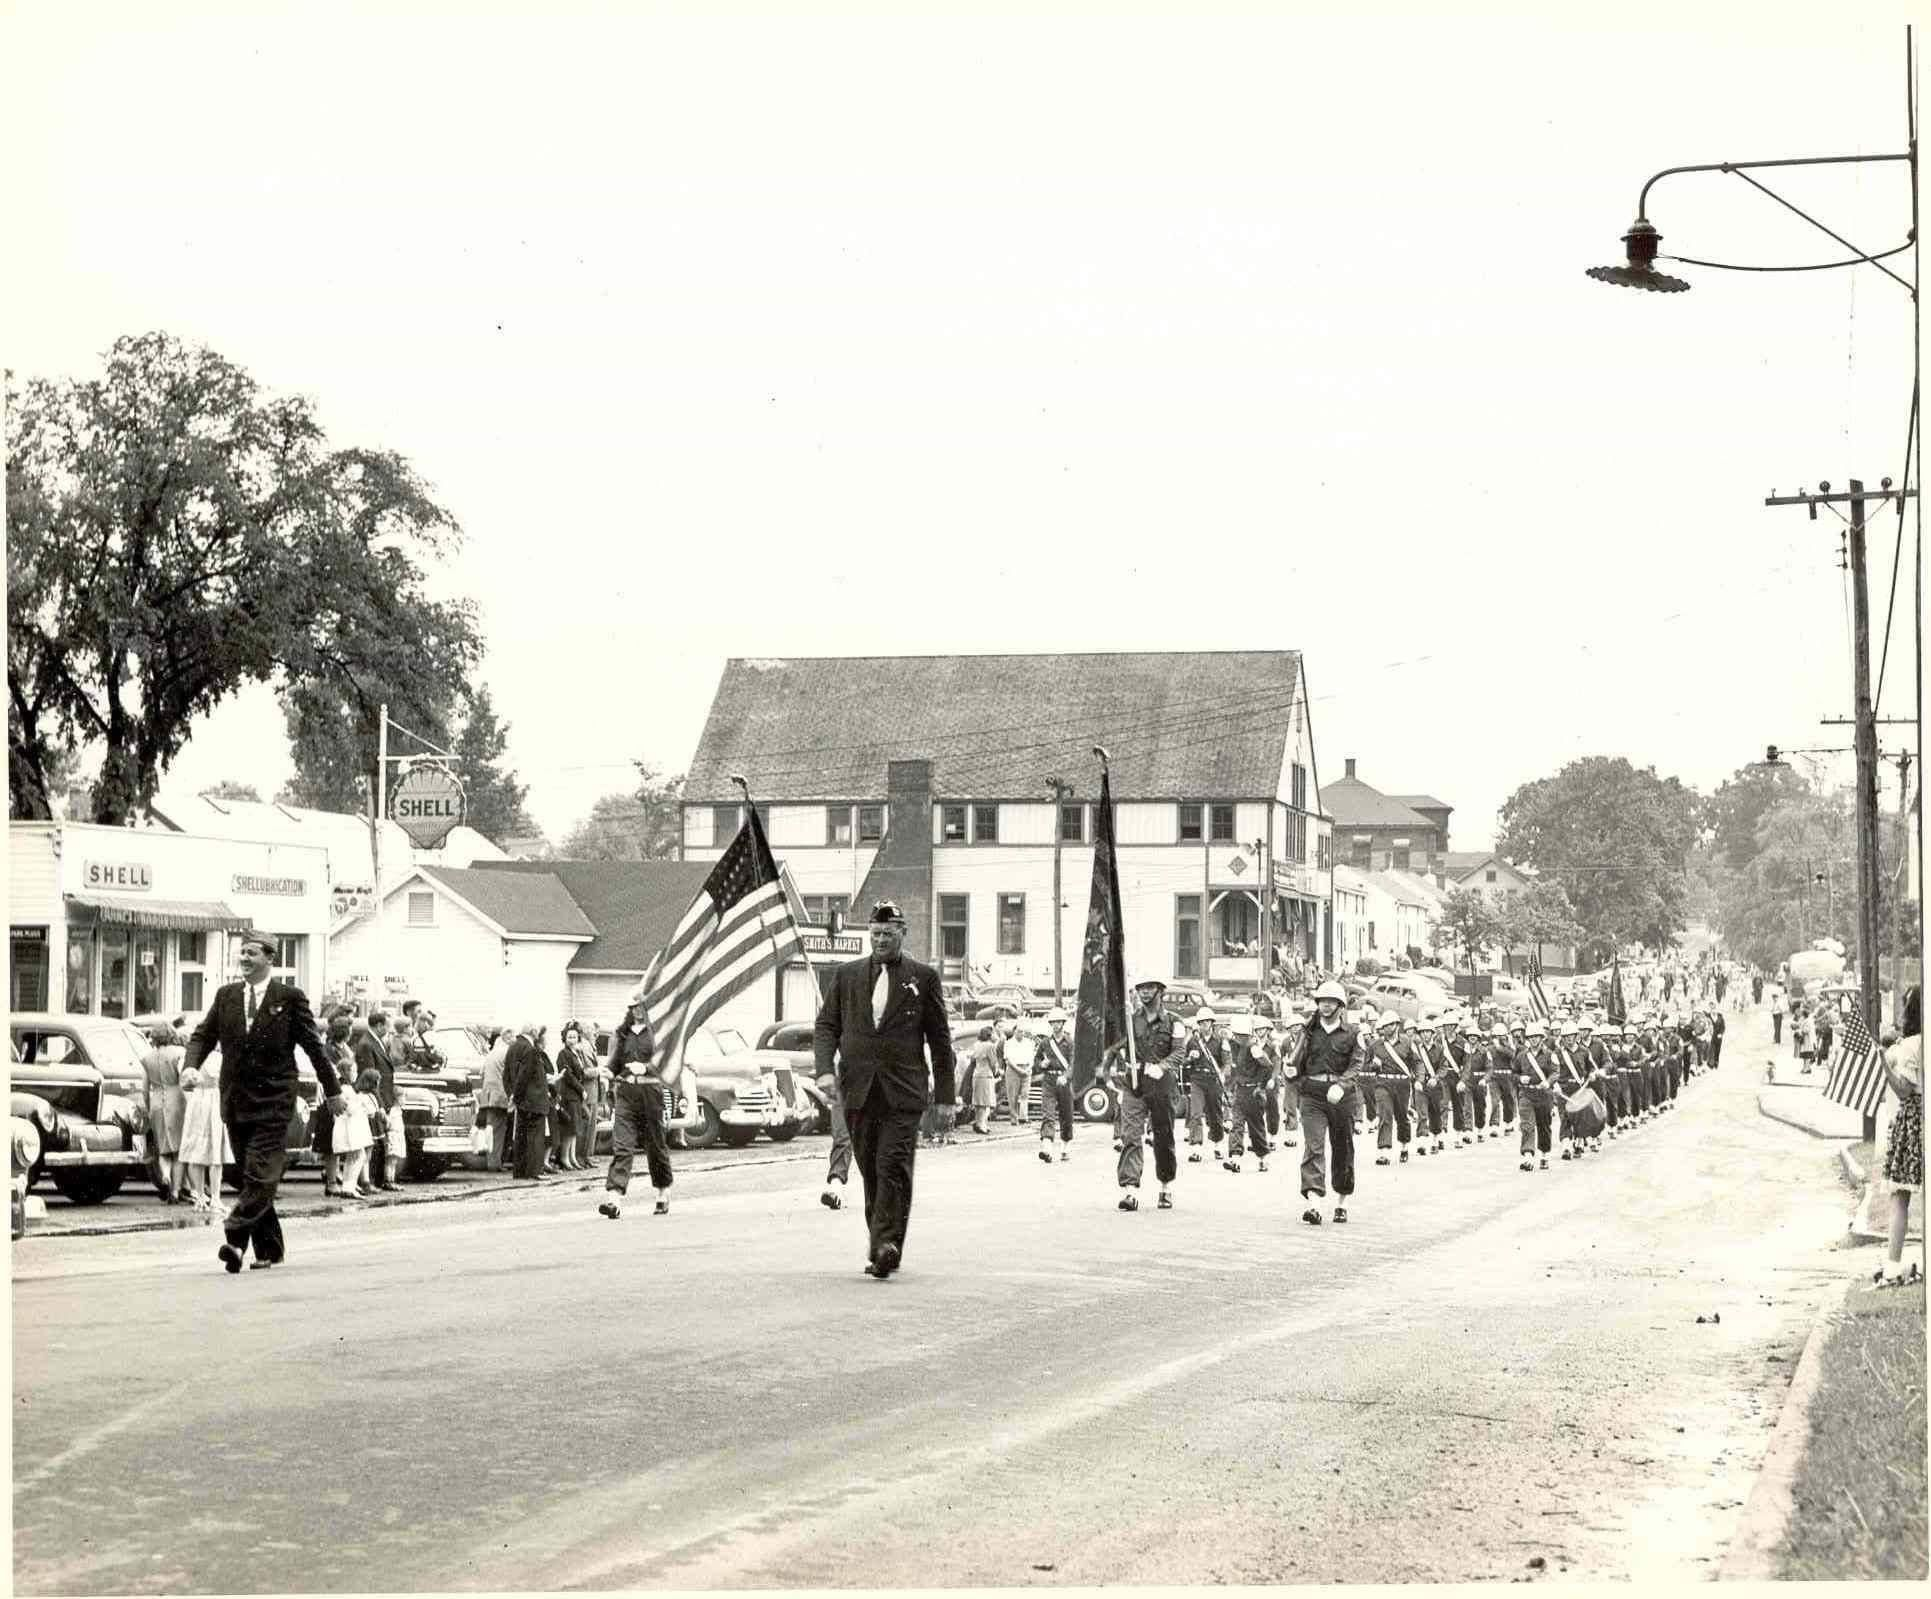 Memorial Day In Broad Brook Unknown Date